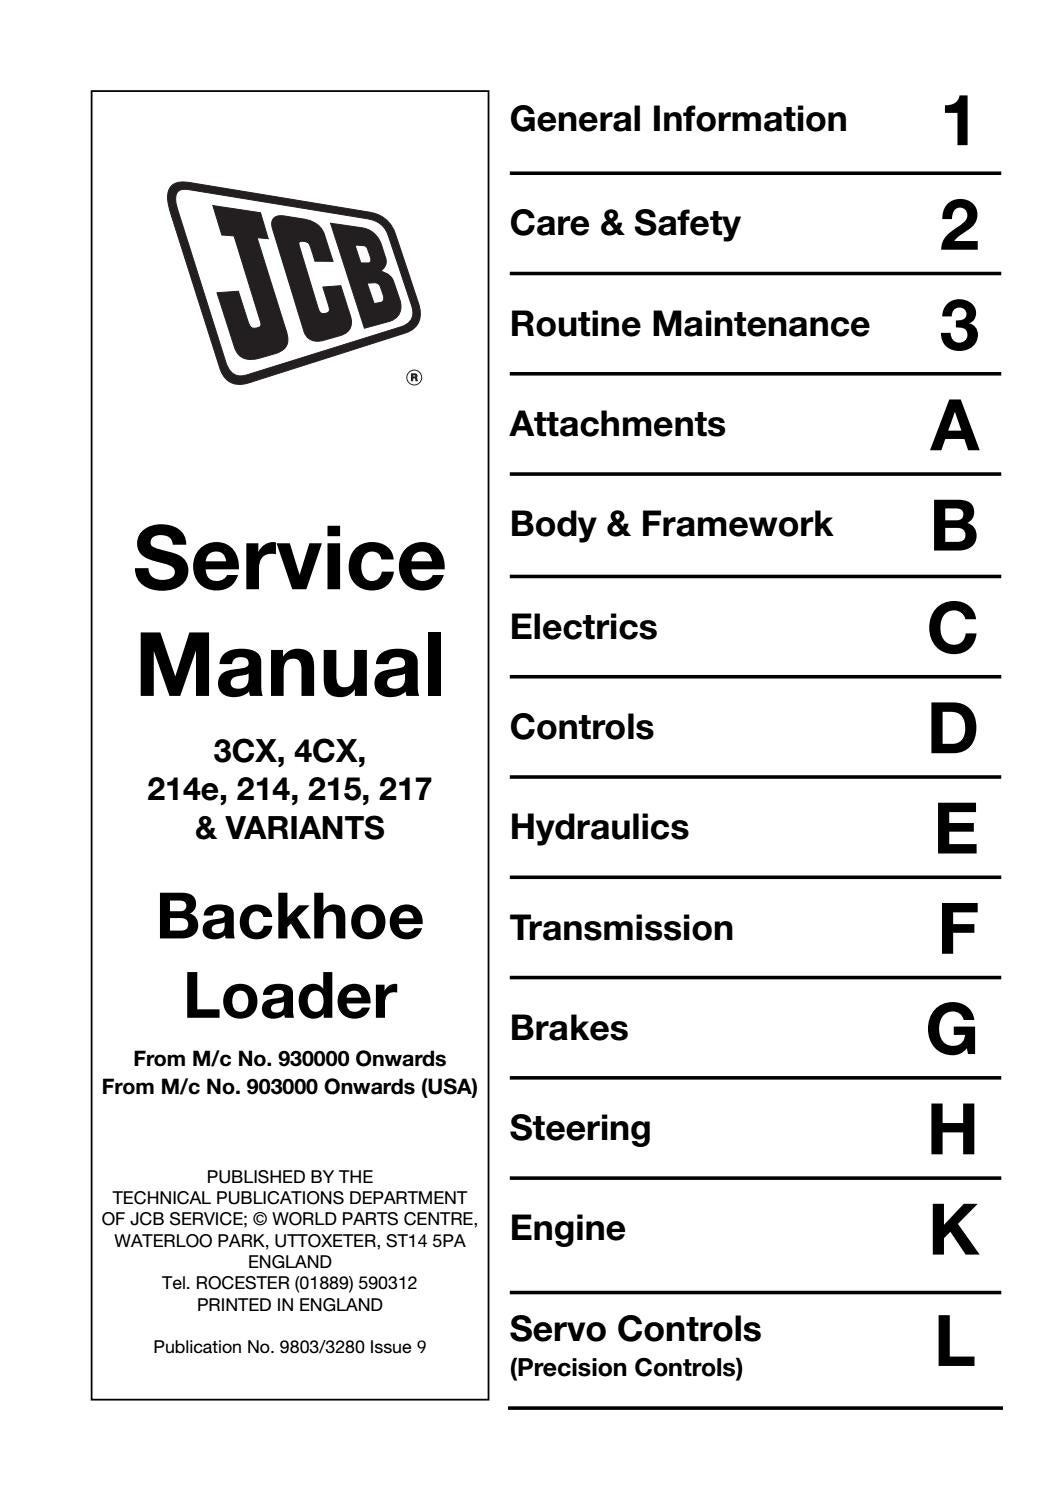 Jcb 3cx 4cx backhoe loader service repair manual sn(930001